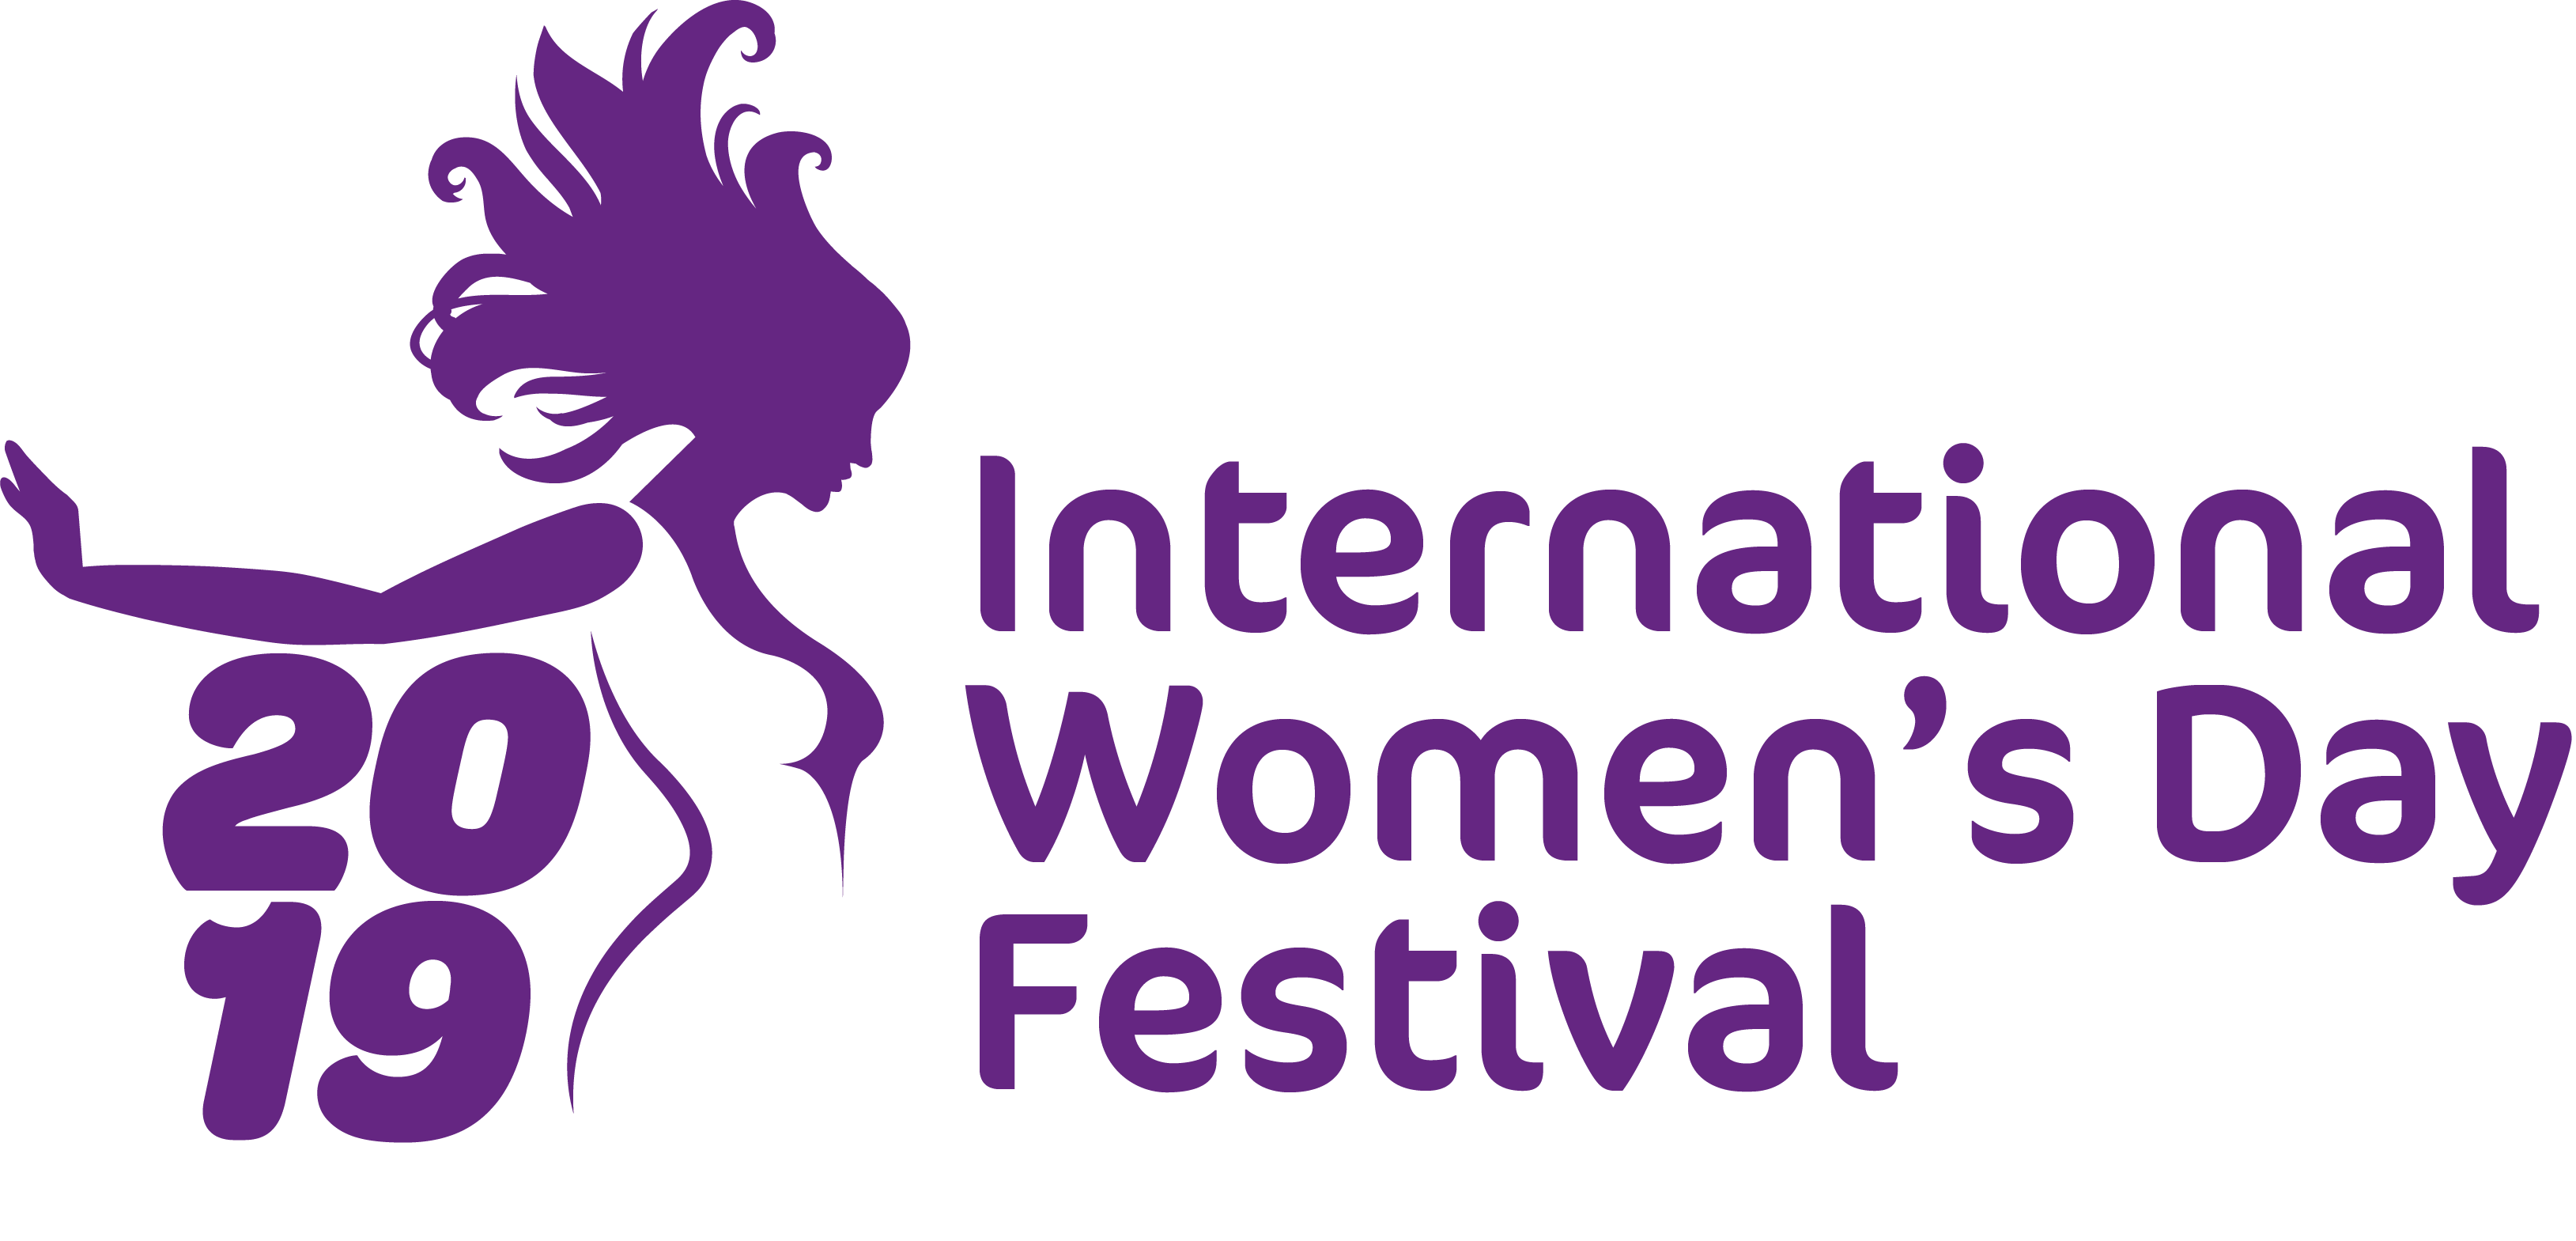 b74d73ad979c1 International Women's Day Festival 2019 | The Washington Group